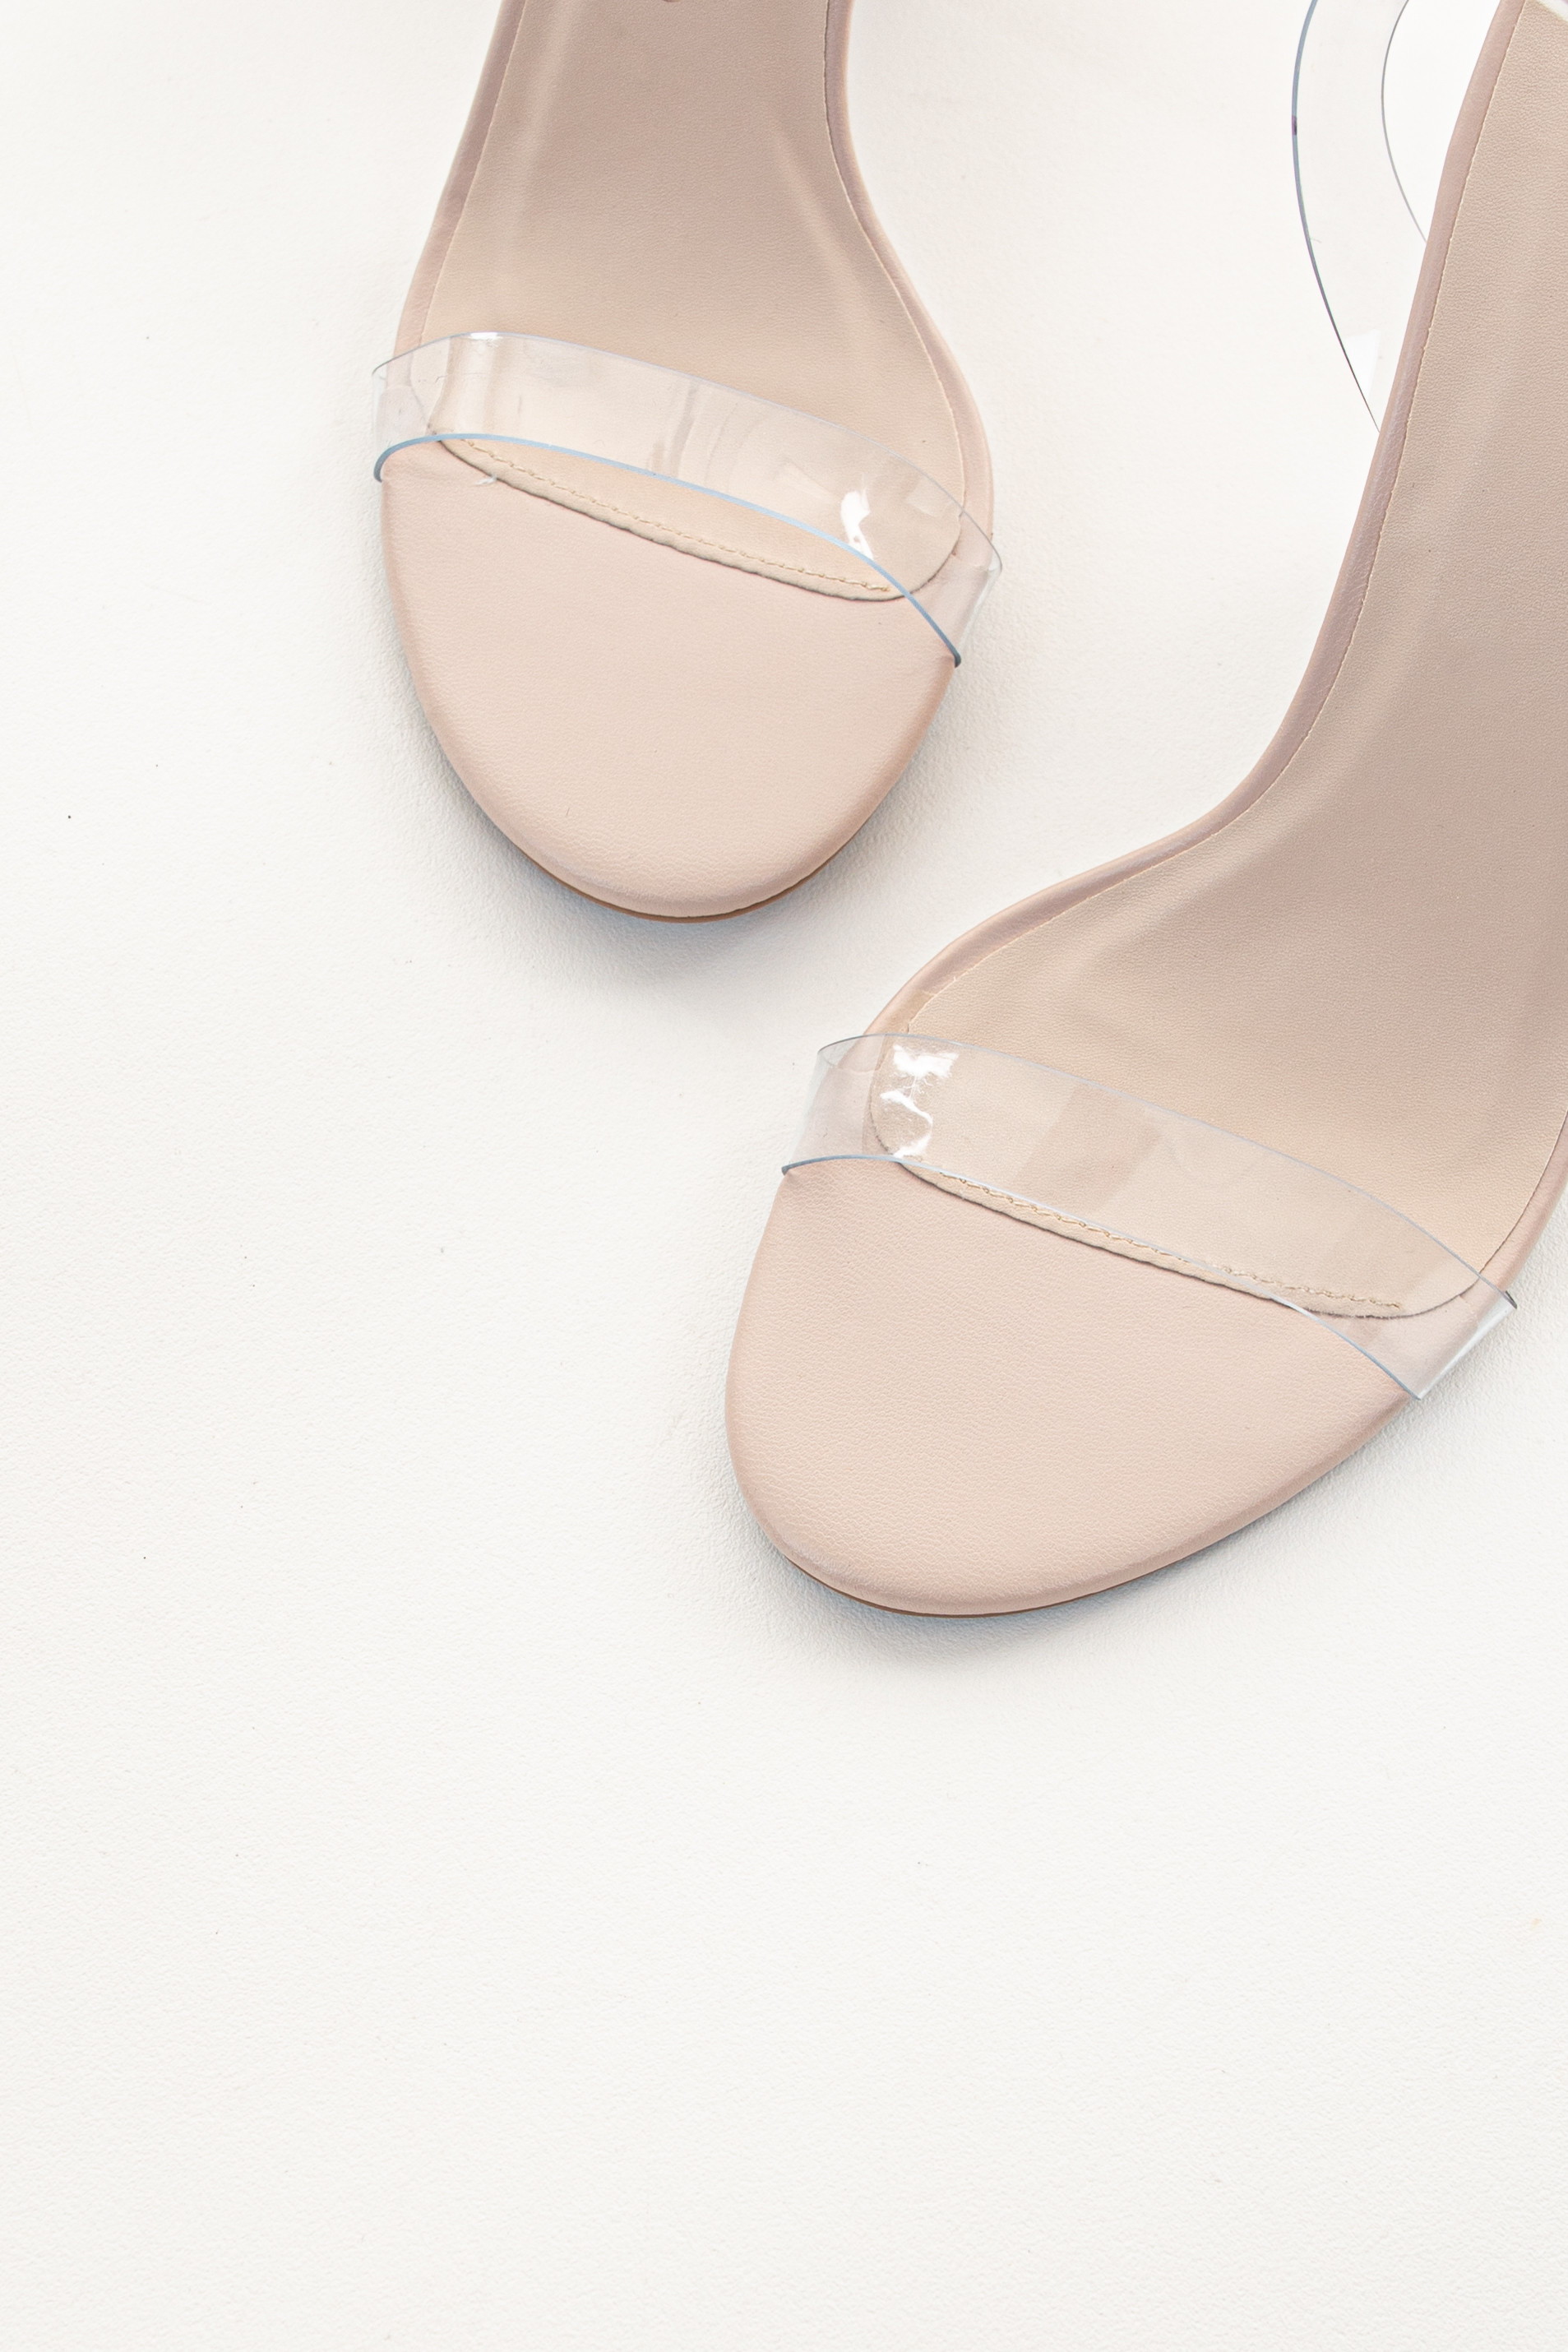 Soft-Peach-High-Heel-Open-Toe-Sandal-with-Clear-Straps-1